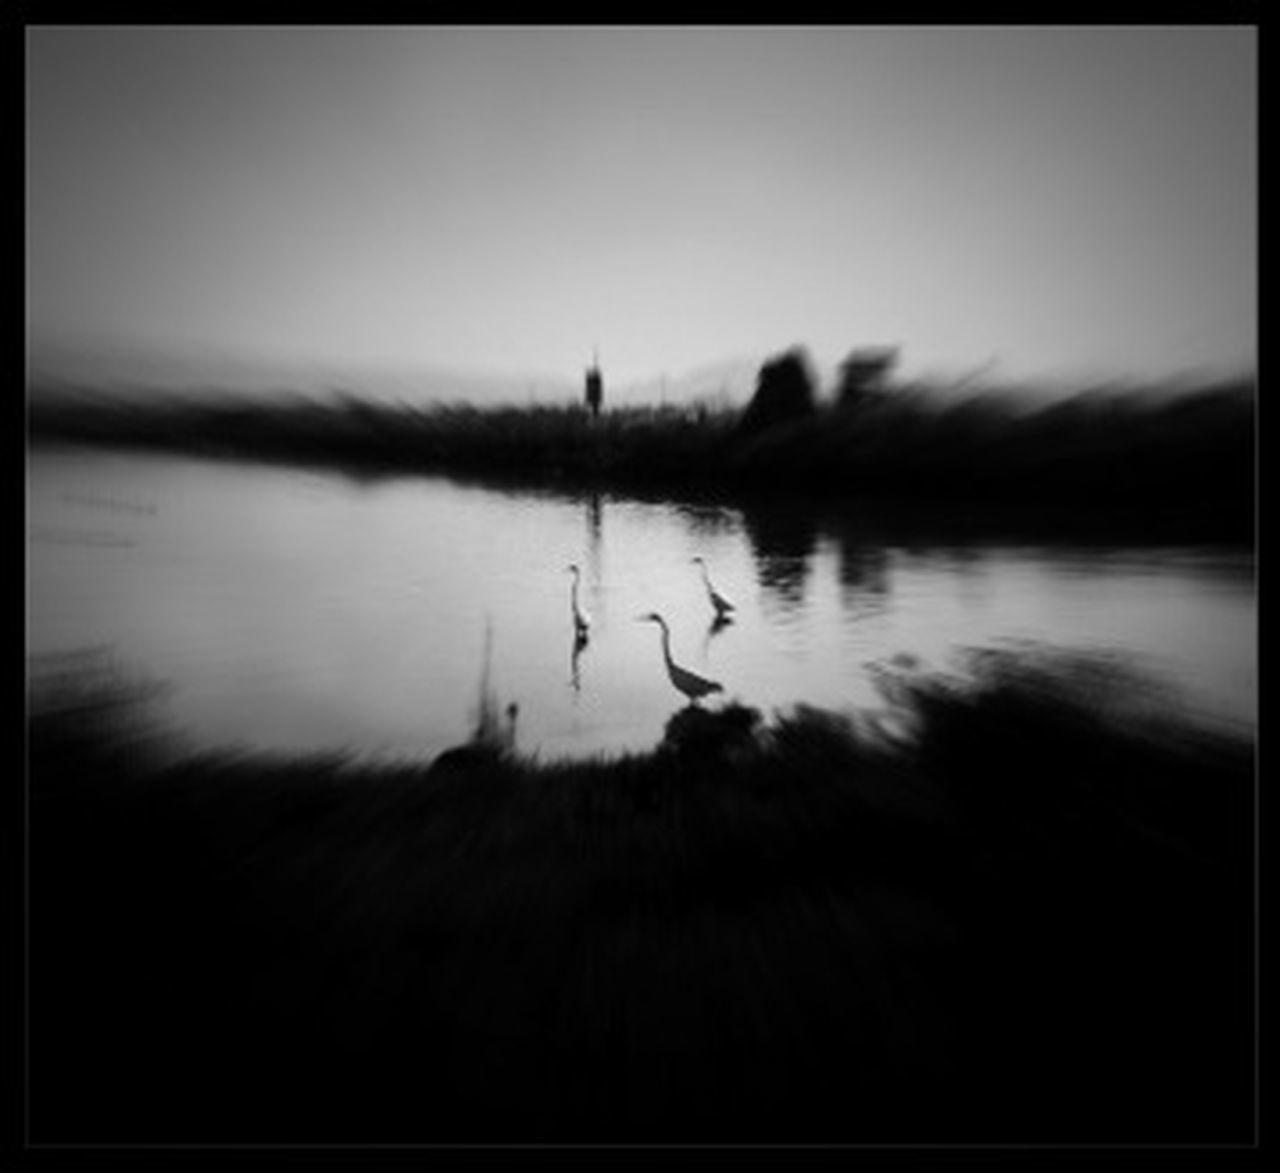 animal themes, animals in the wild, bird, one animal, reflection, animal wildlife, silhouette, no people, lake, outdoors, nature, day, water, sky